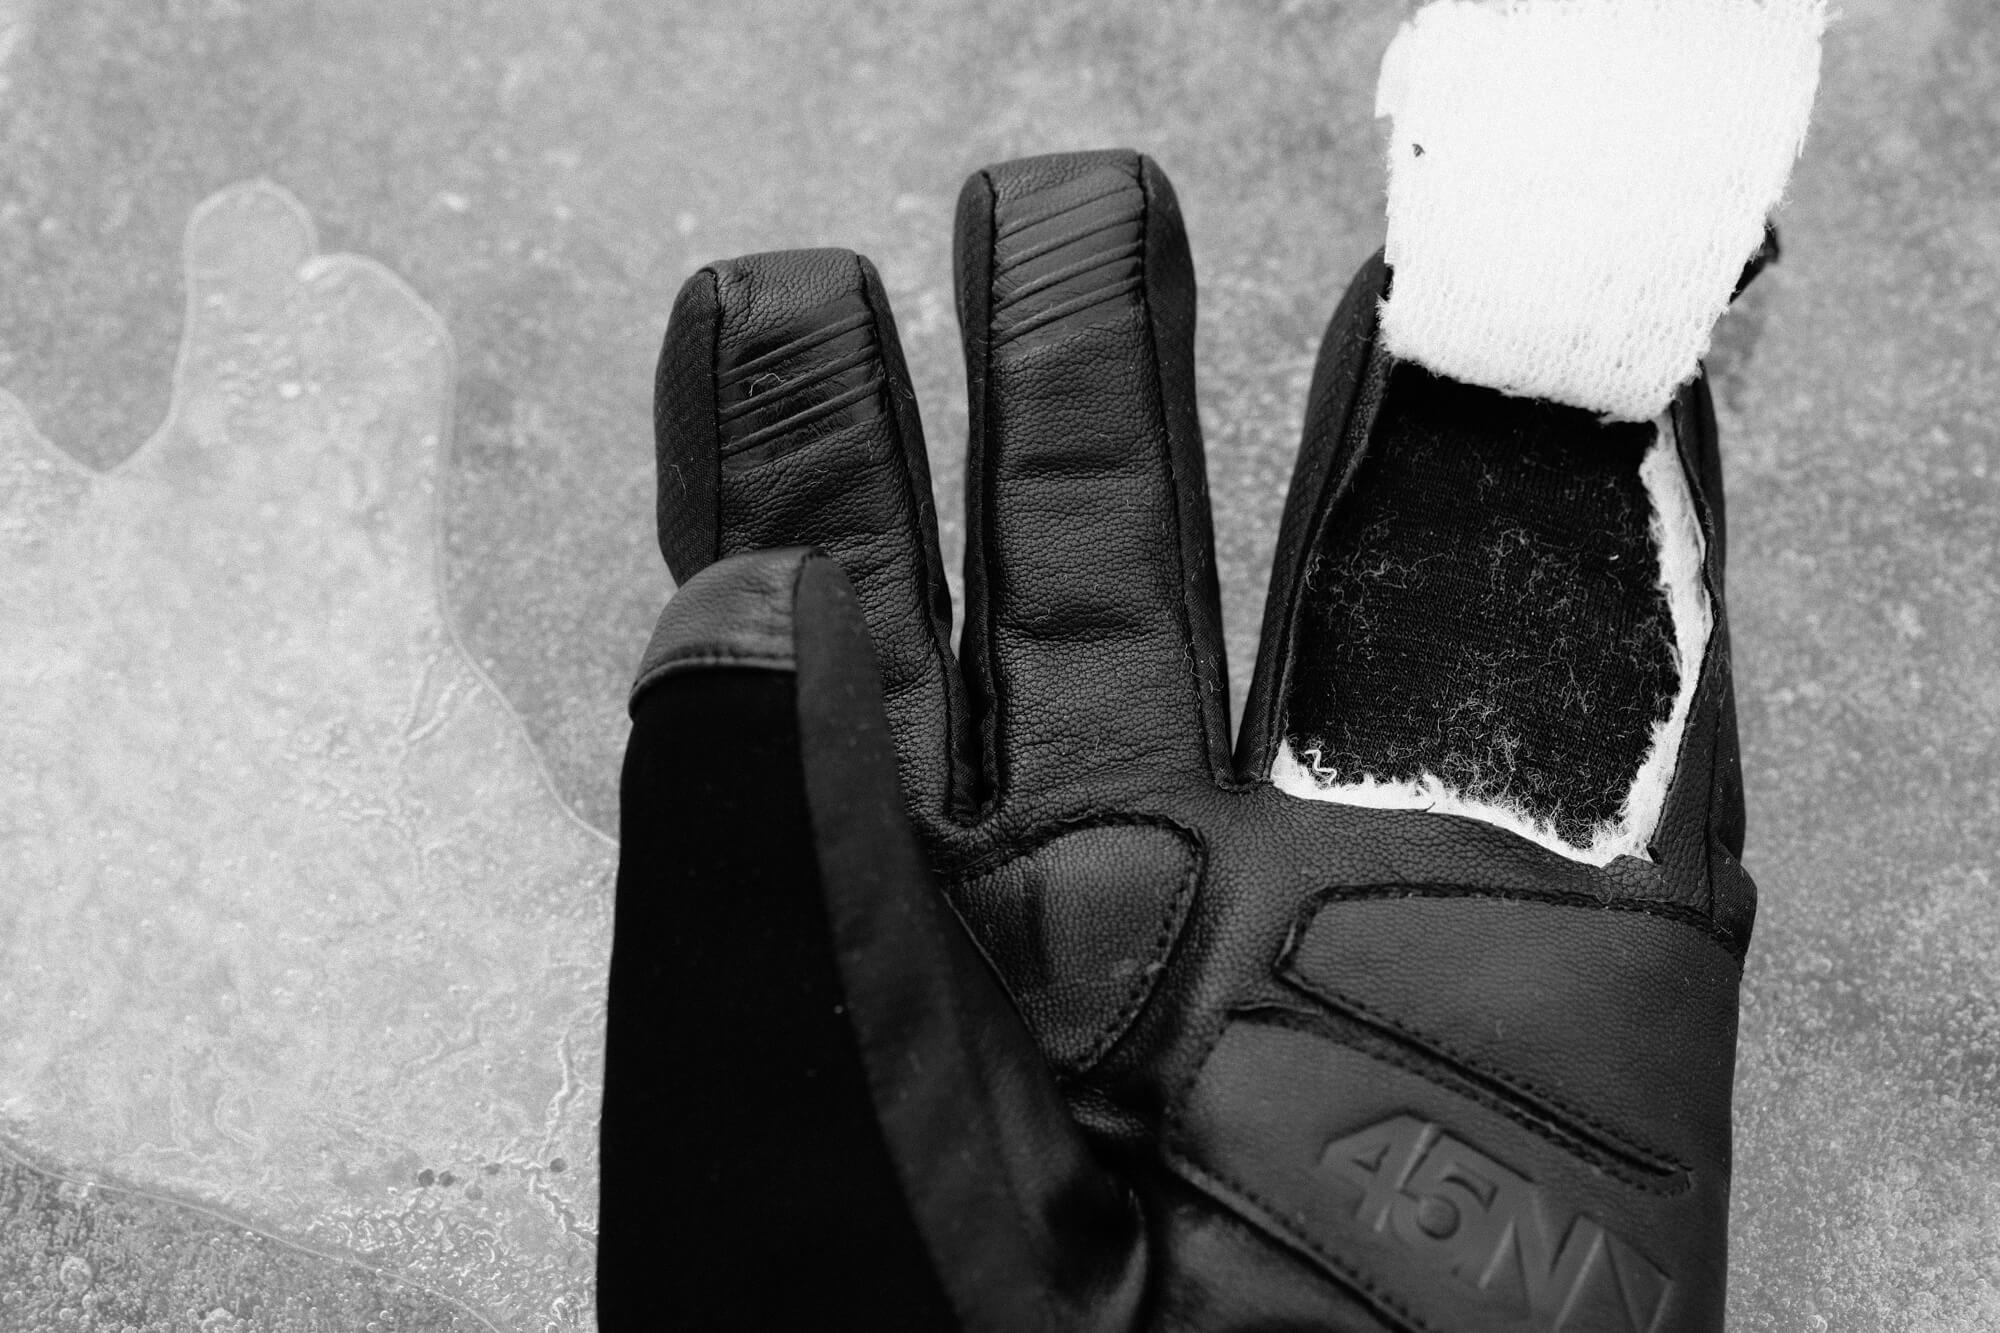 A 45NRTH Sturmfist 4 glove with a cross-section of a finger removed to show Merino wool lining